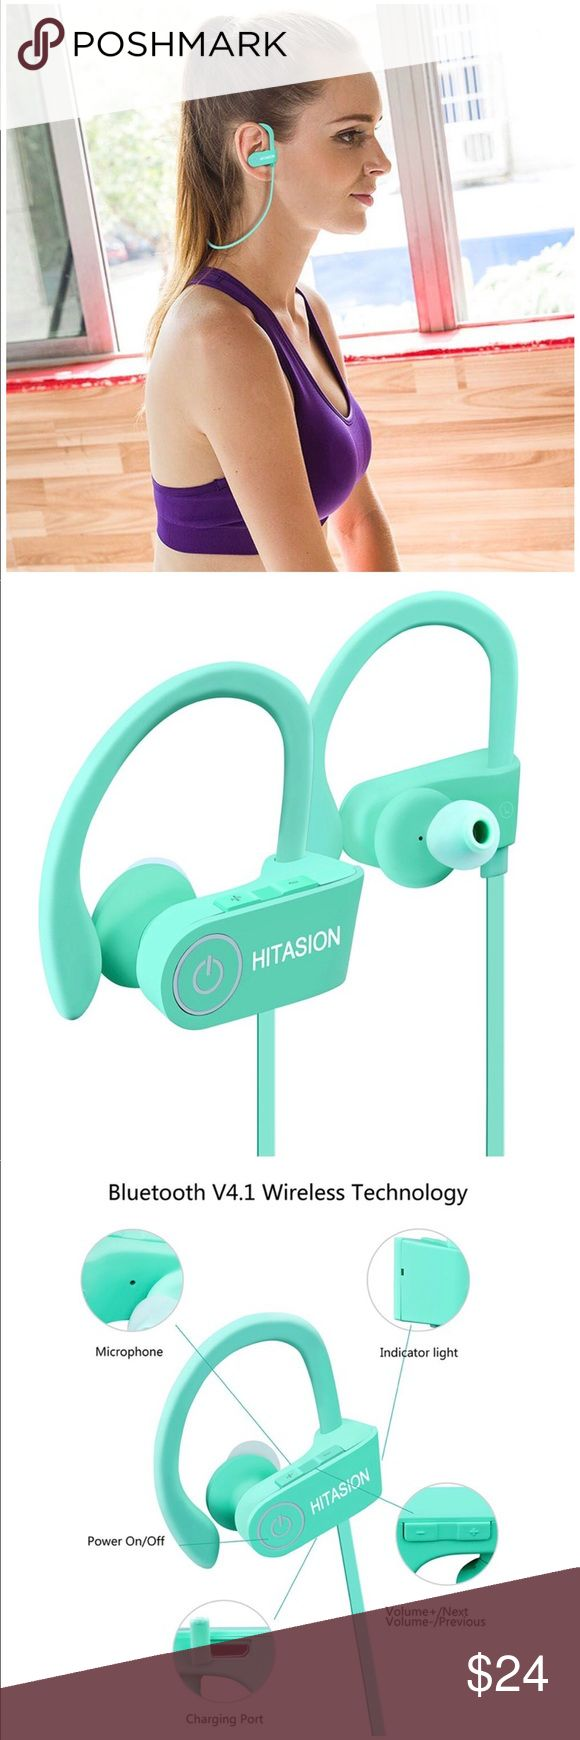 Bluetooth Best Wireless Sports Earphones Bluetooth Headphones for Women/Men's Best Wireless Sports Earphones W/Mic HD Crisp Sound Waterproof Hooks Gym Running Workout 8 Hours Battery Noise Cancelling Headsets Mint Green  LONGEST BATTERY LIFE - The latest lithium polymer battery allows to run for up to 6-8 hours and 10 days stand-by with a quick charge of only 1.5 hours to 2 hours fully when run out of battery. Accessories